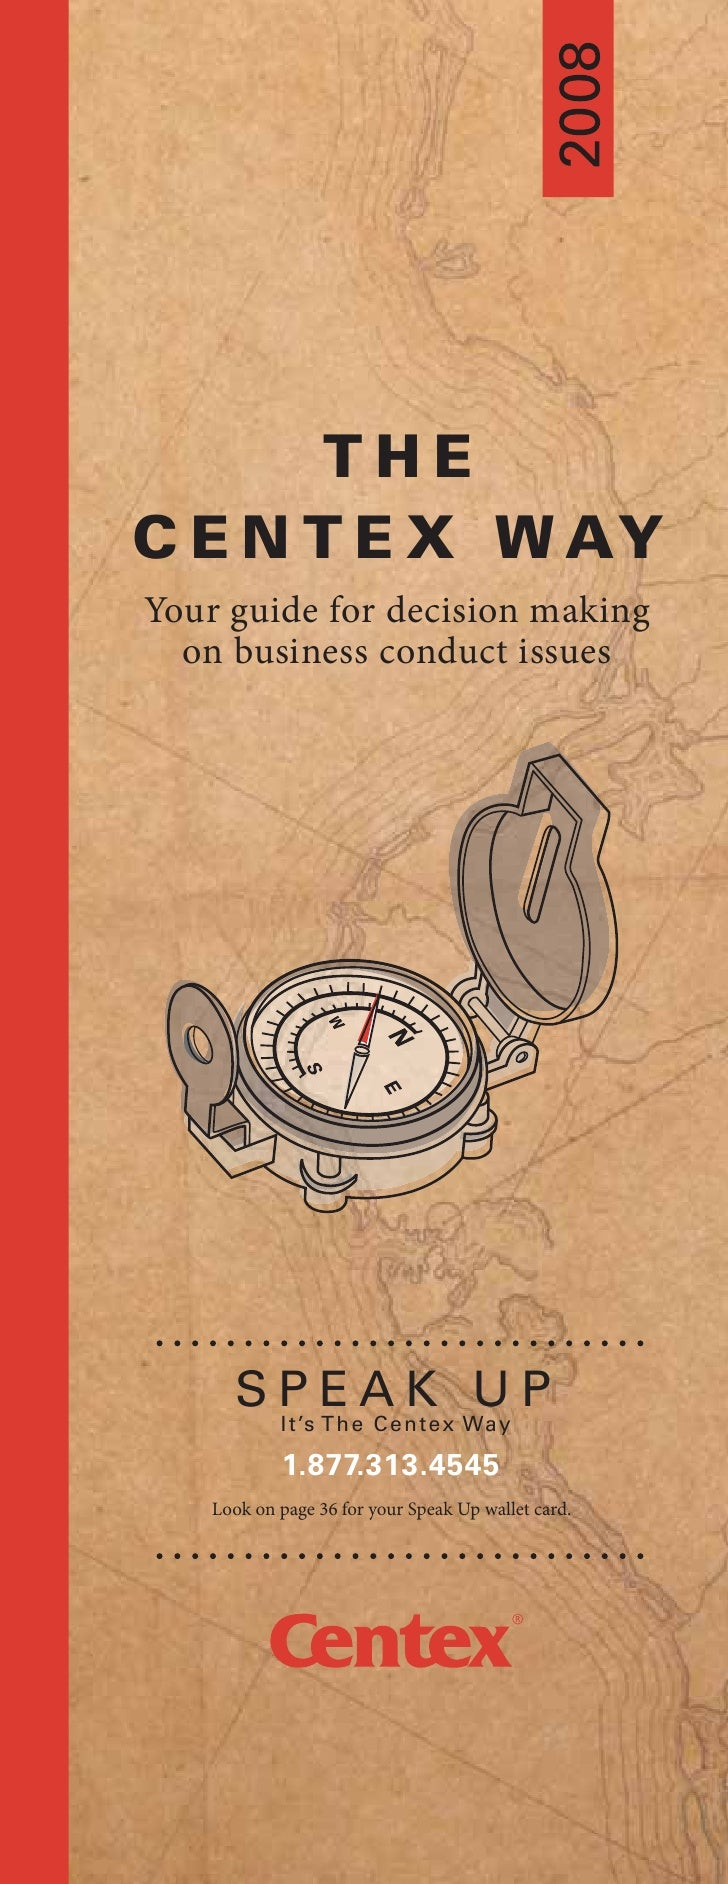 THE C E N T E X W AY Your guide for decision making   on business conduct issues           S P E eA n te x Wa y P         ...